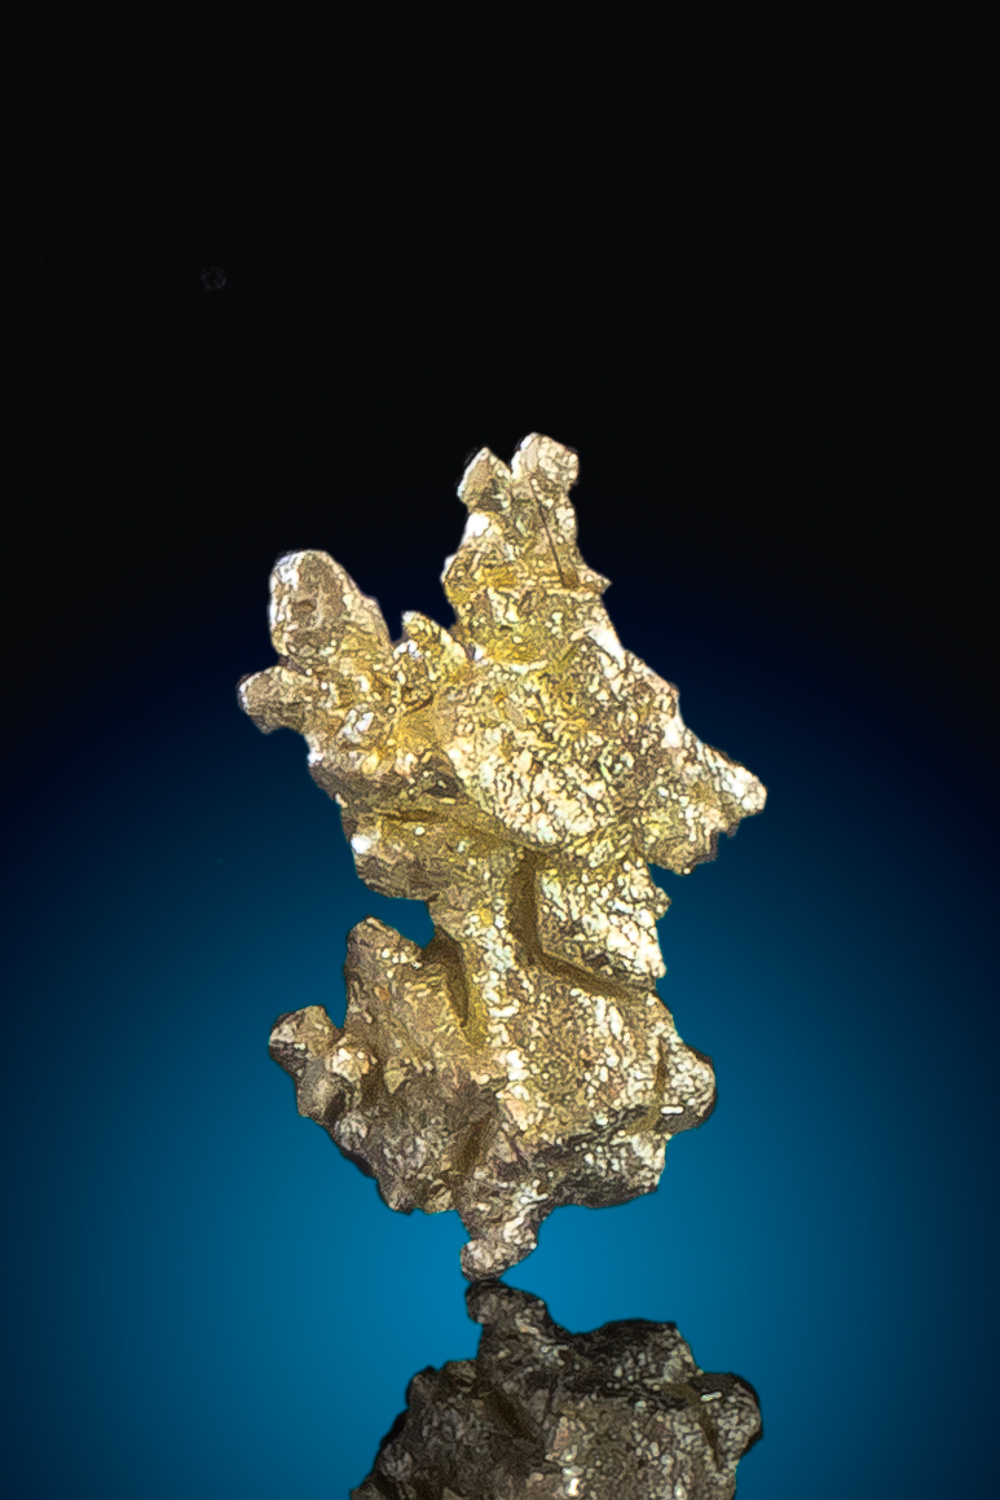 Brilliant Color - Gold Crystal Specimen from Round Mountain